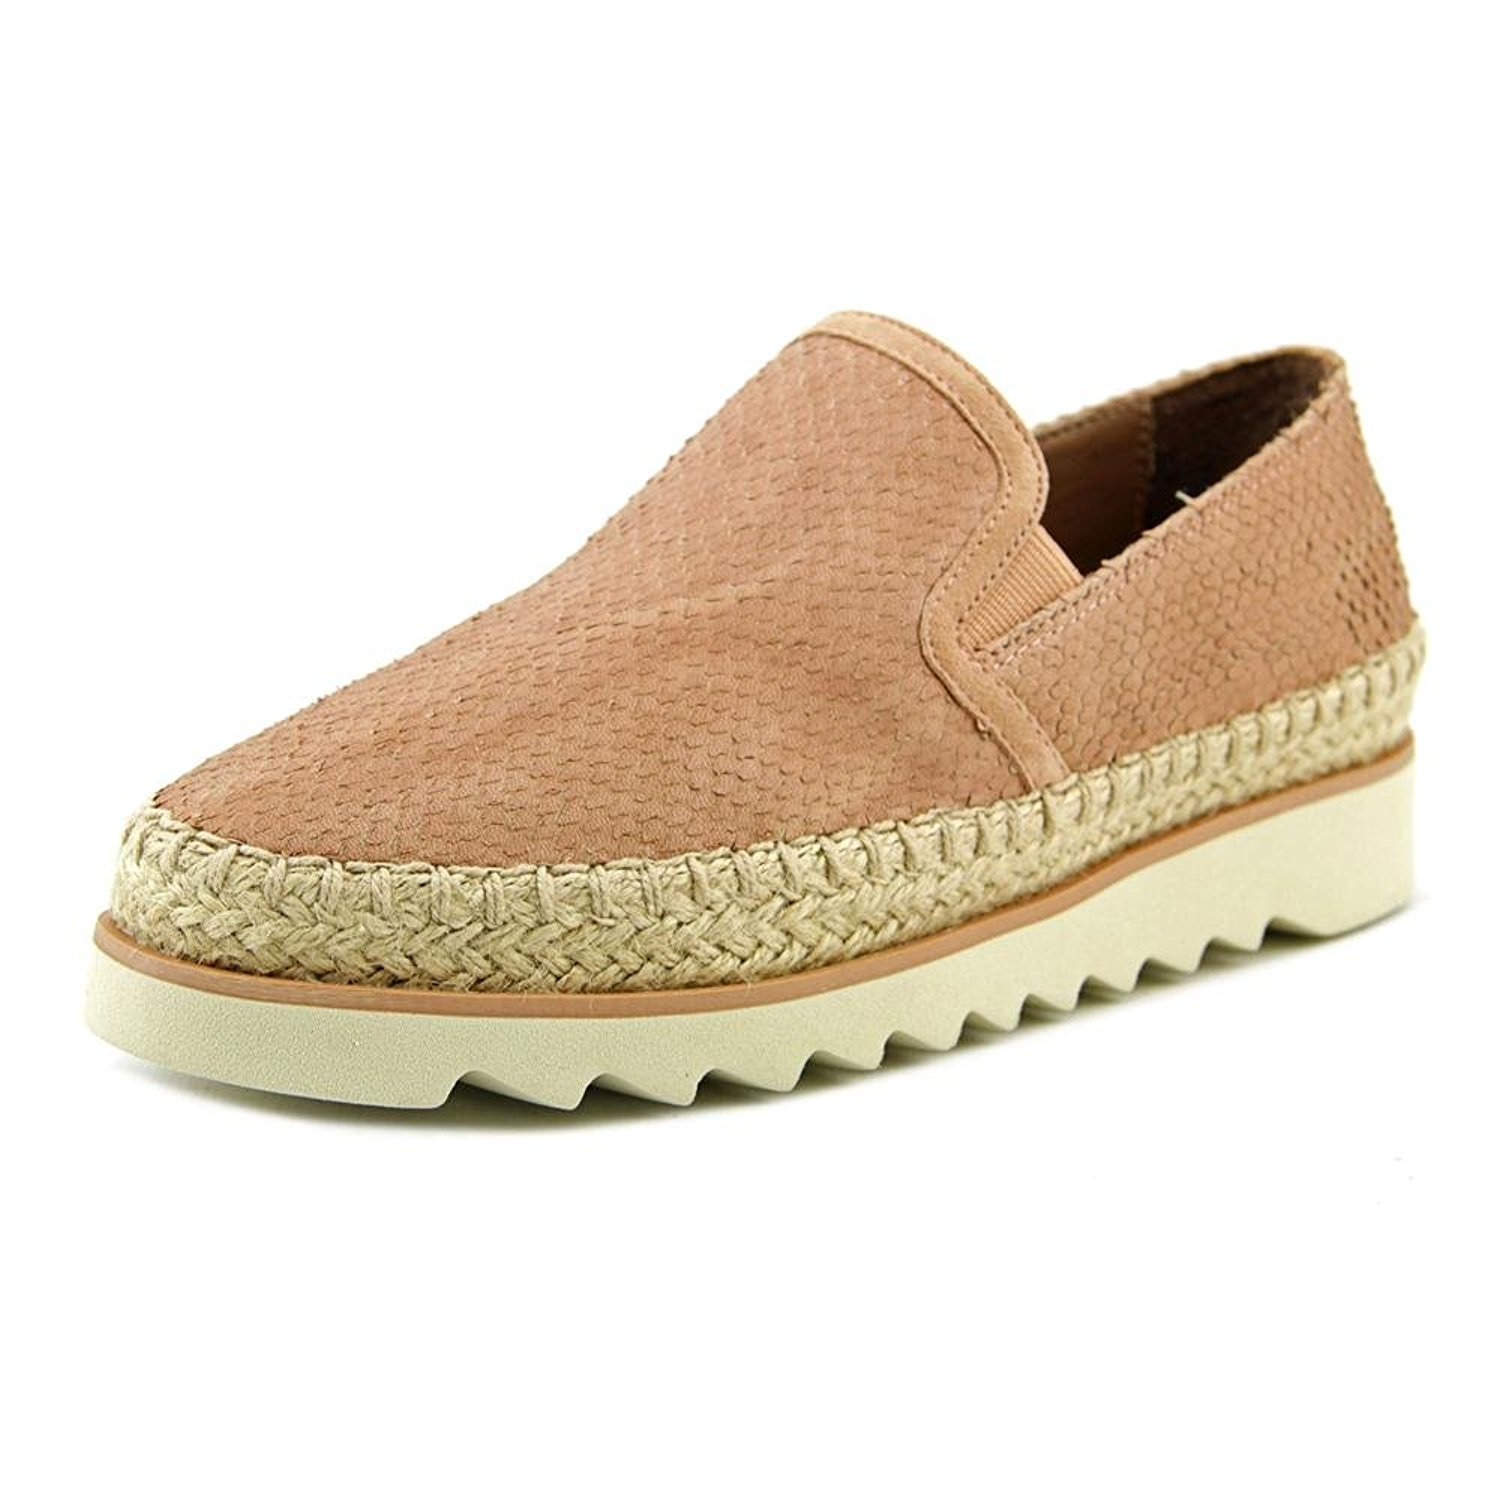 Donald J Pliner Womens MILLIE Leather Low Top Slip On Fashion Sneakers by Donald J Pliner